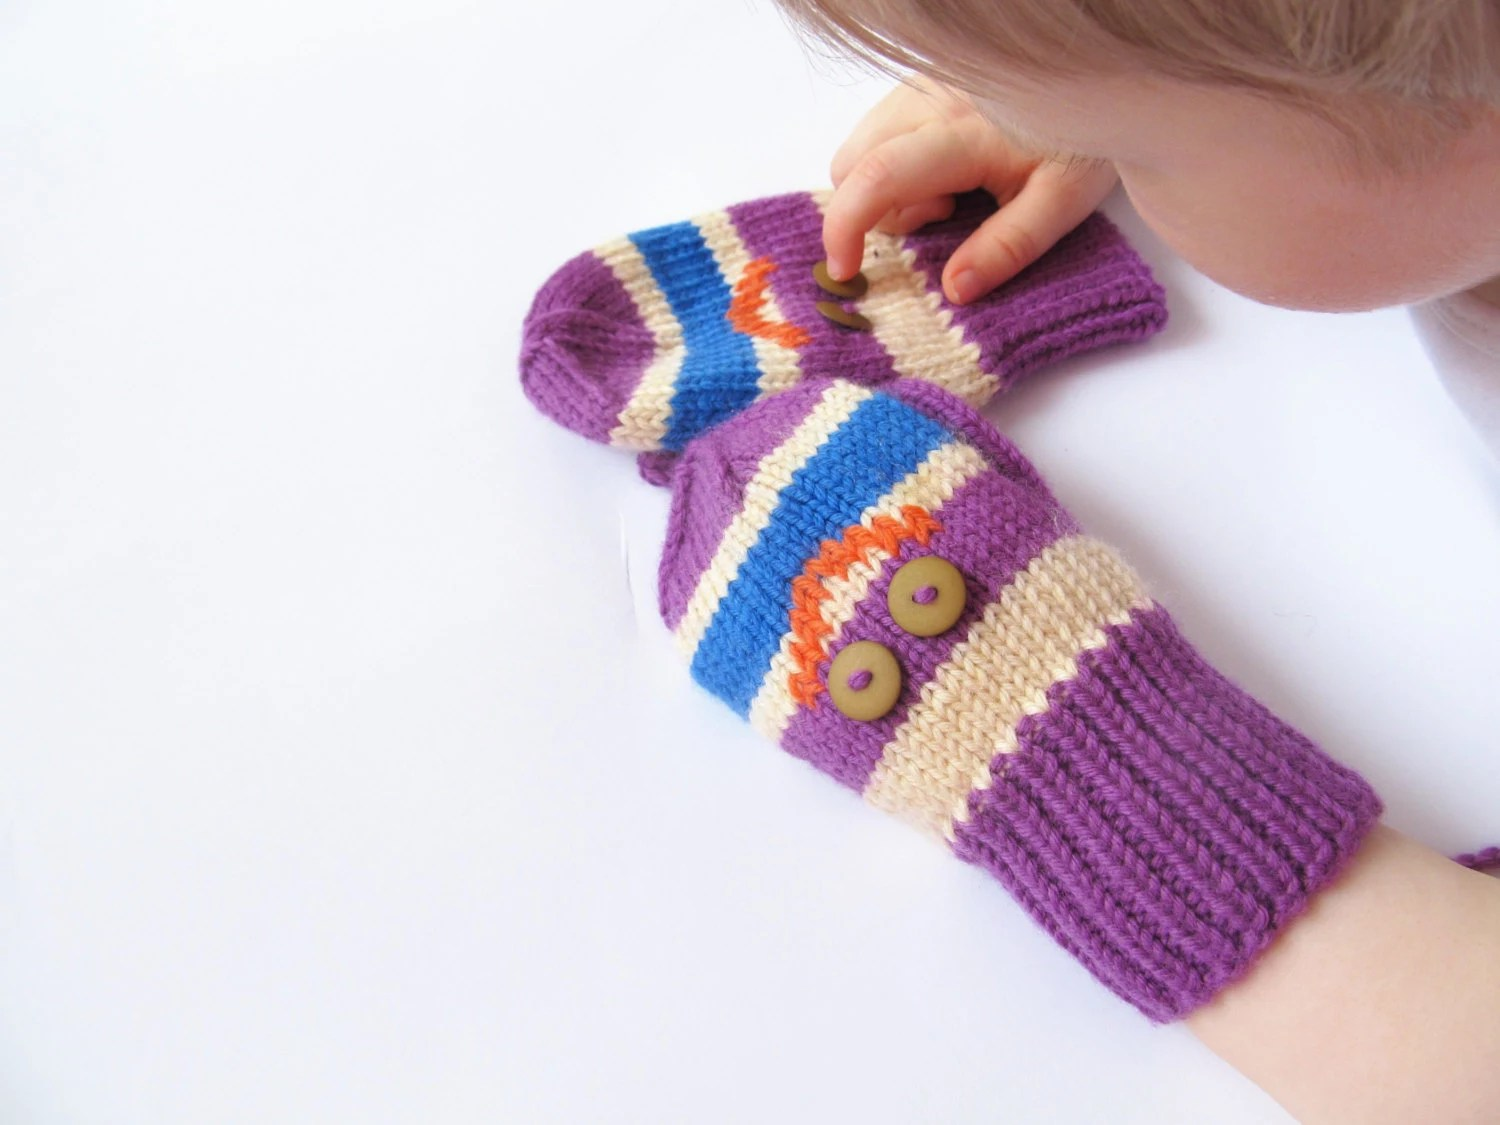 Merino Wool Mittens for Baby - Knitted Super Soft Merino Wool Mittens for Kids - Purple Baby Mittens - Gift for Children - Made to Order - Junikid